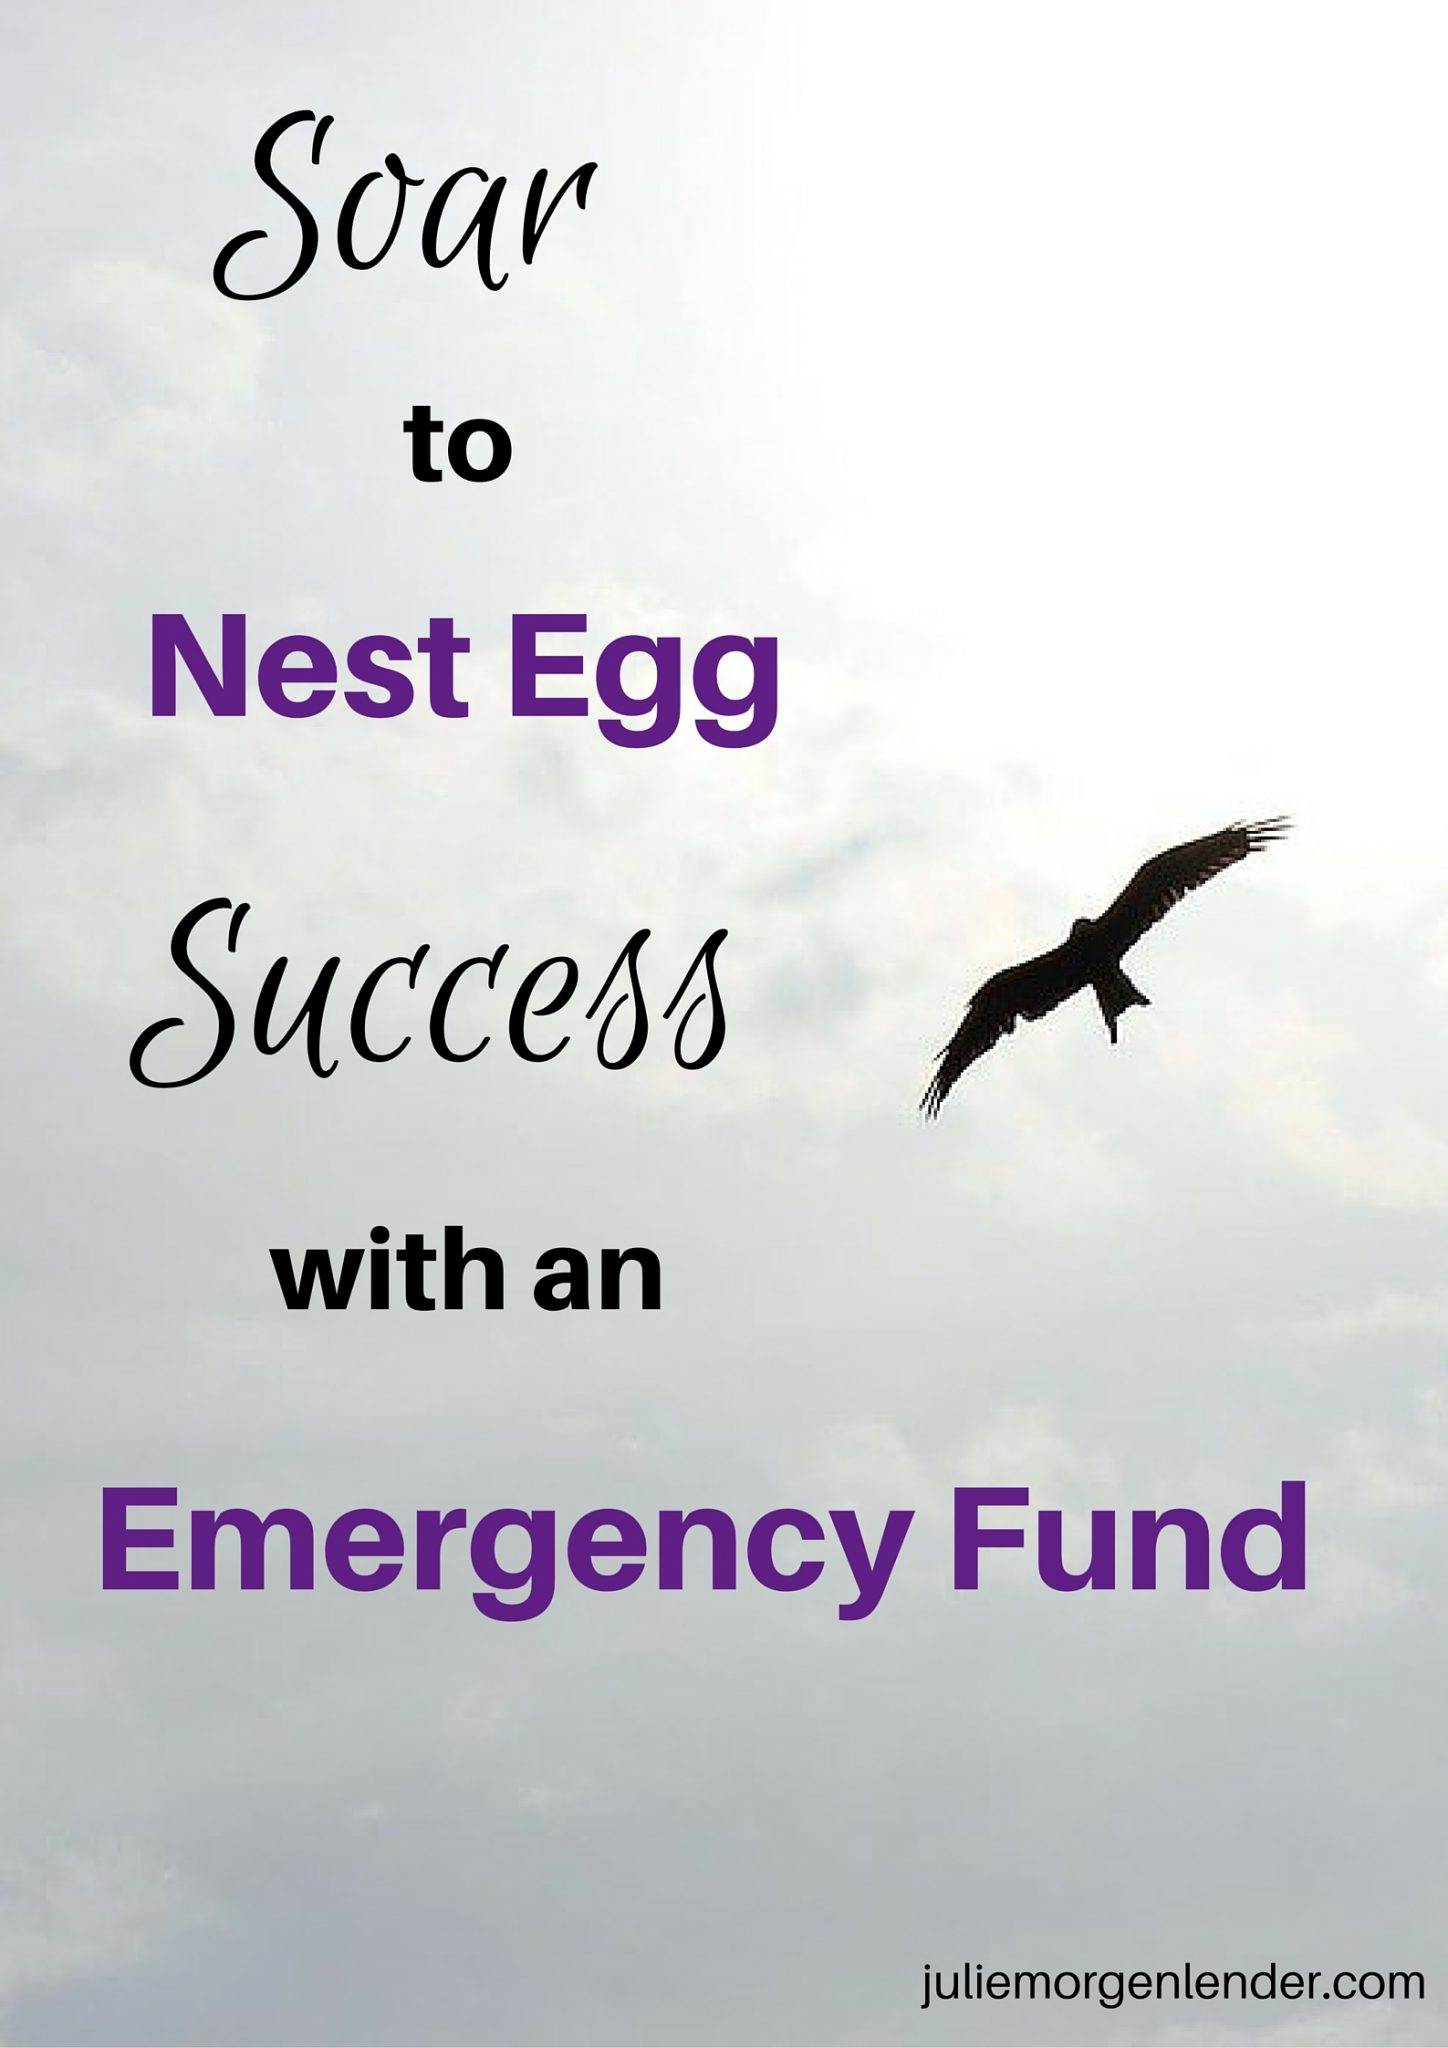 Soar to nest egg success with an emergency fund